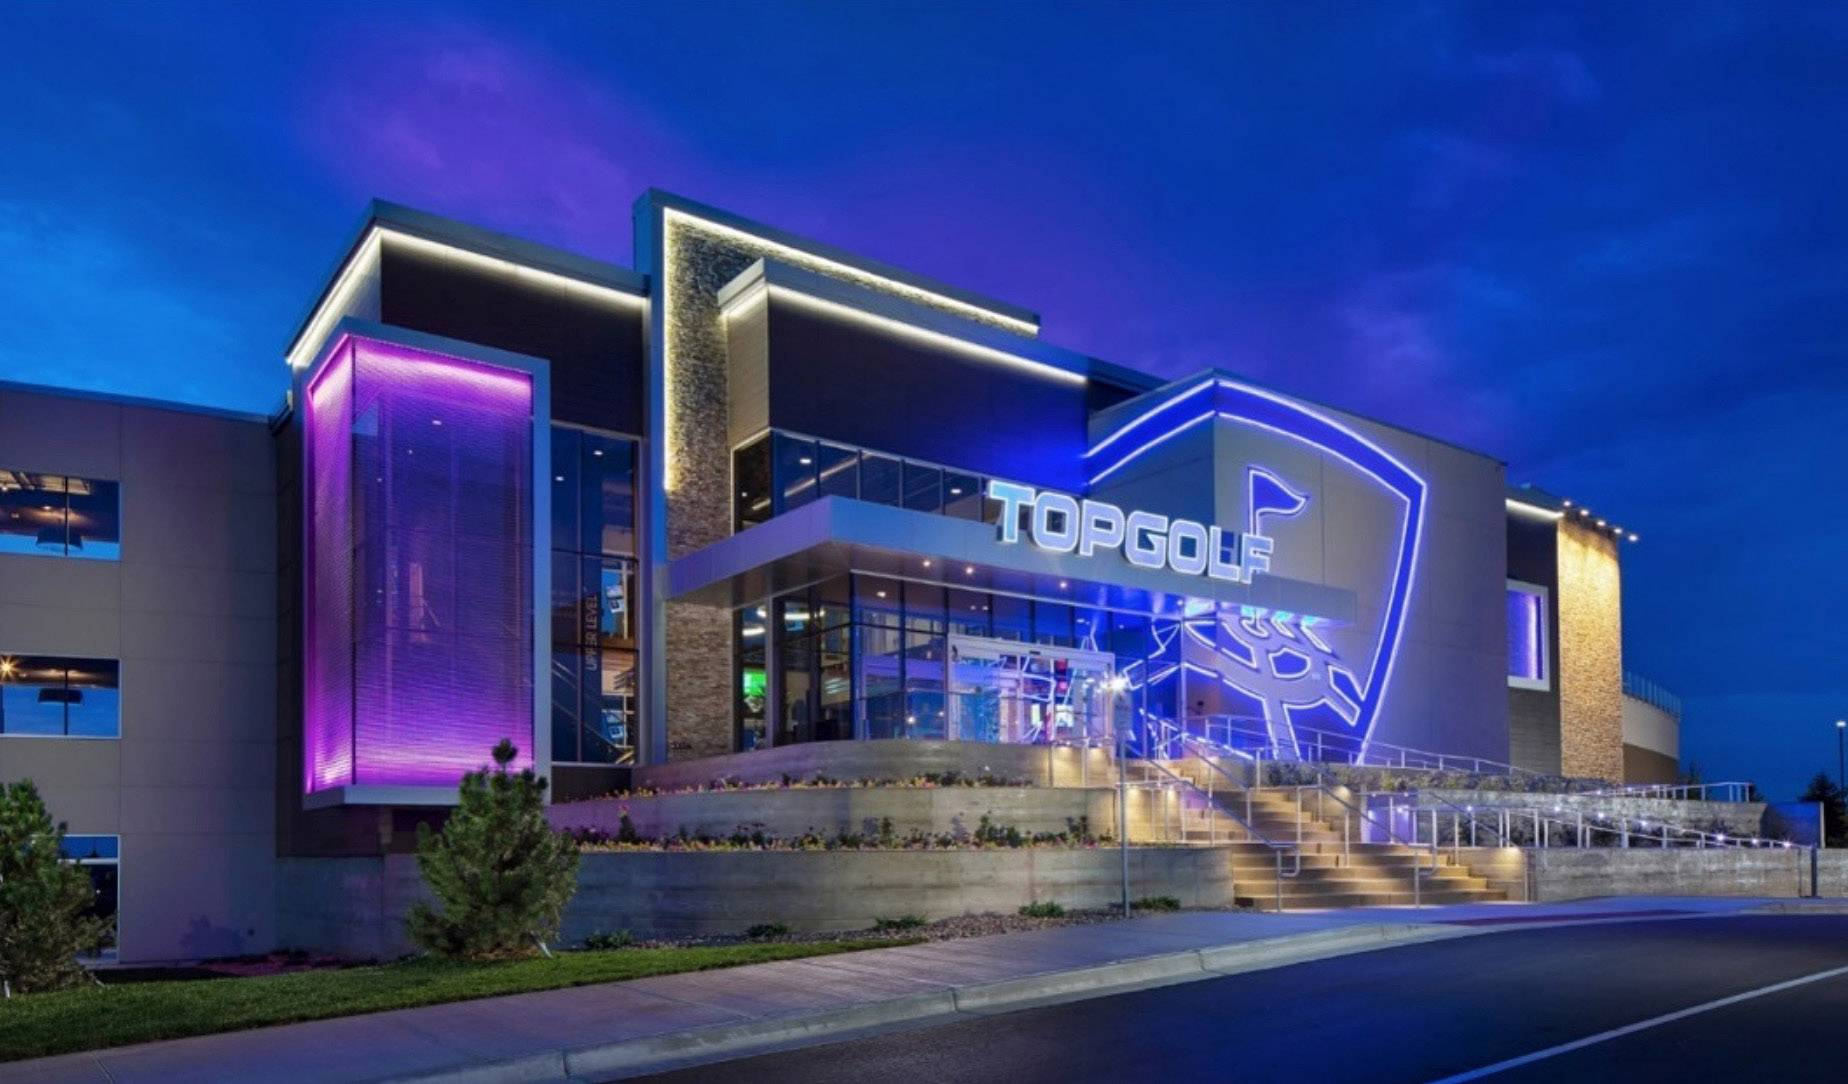 Lincolnshire residents displeased with plan for Topgolf facility